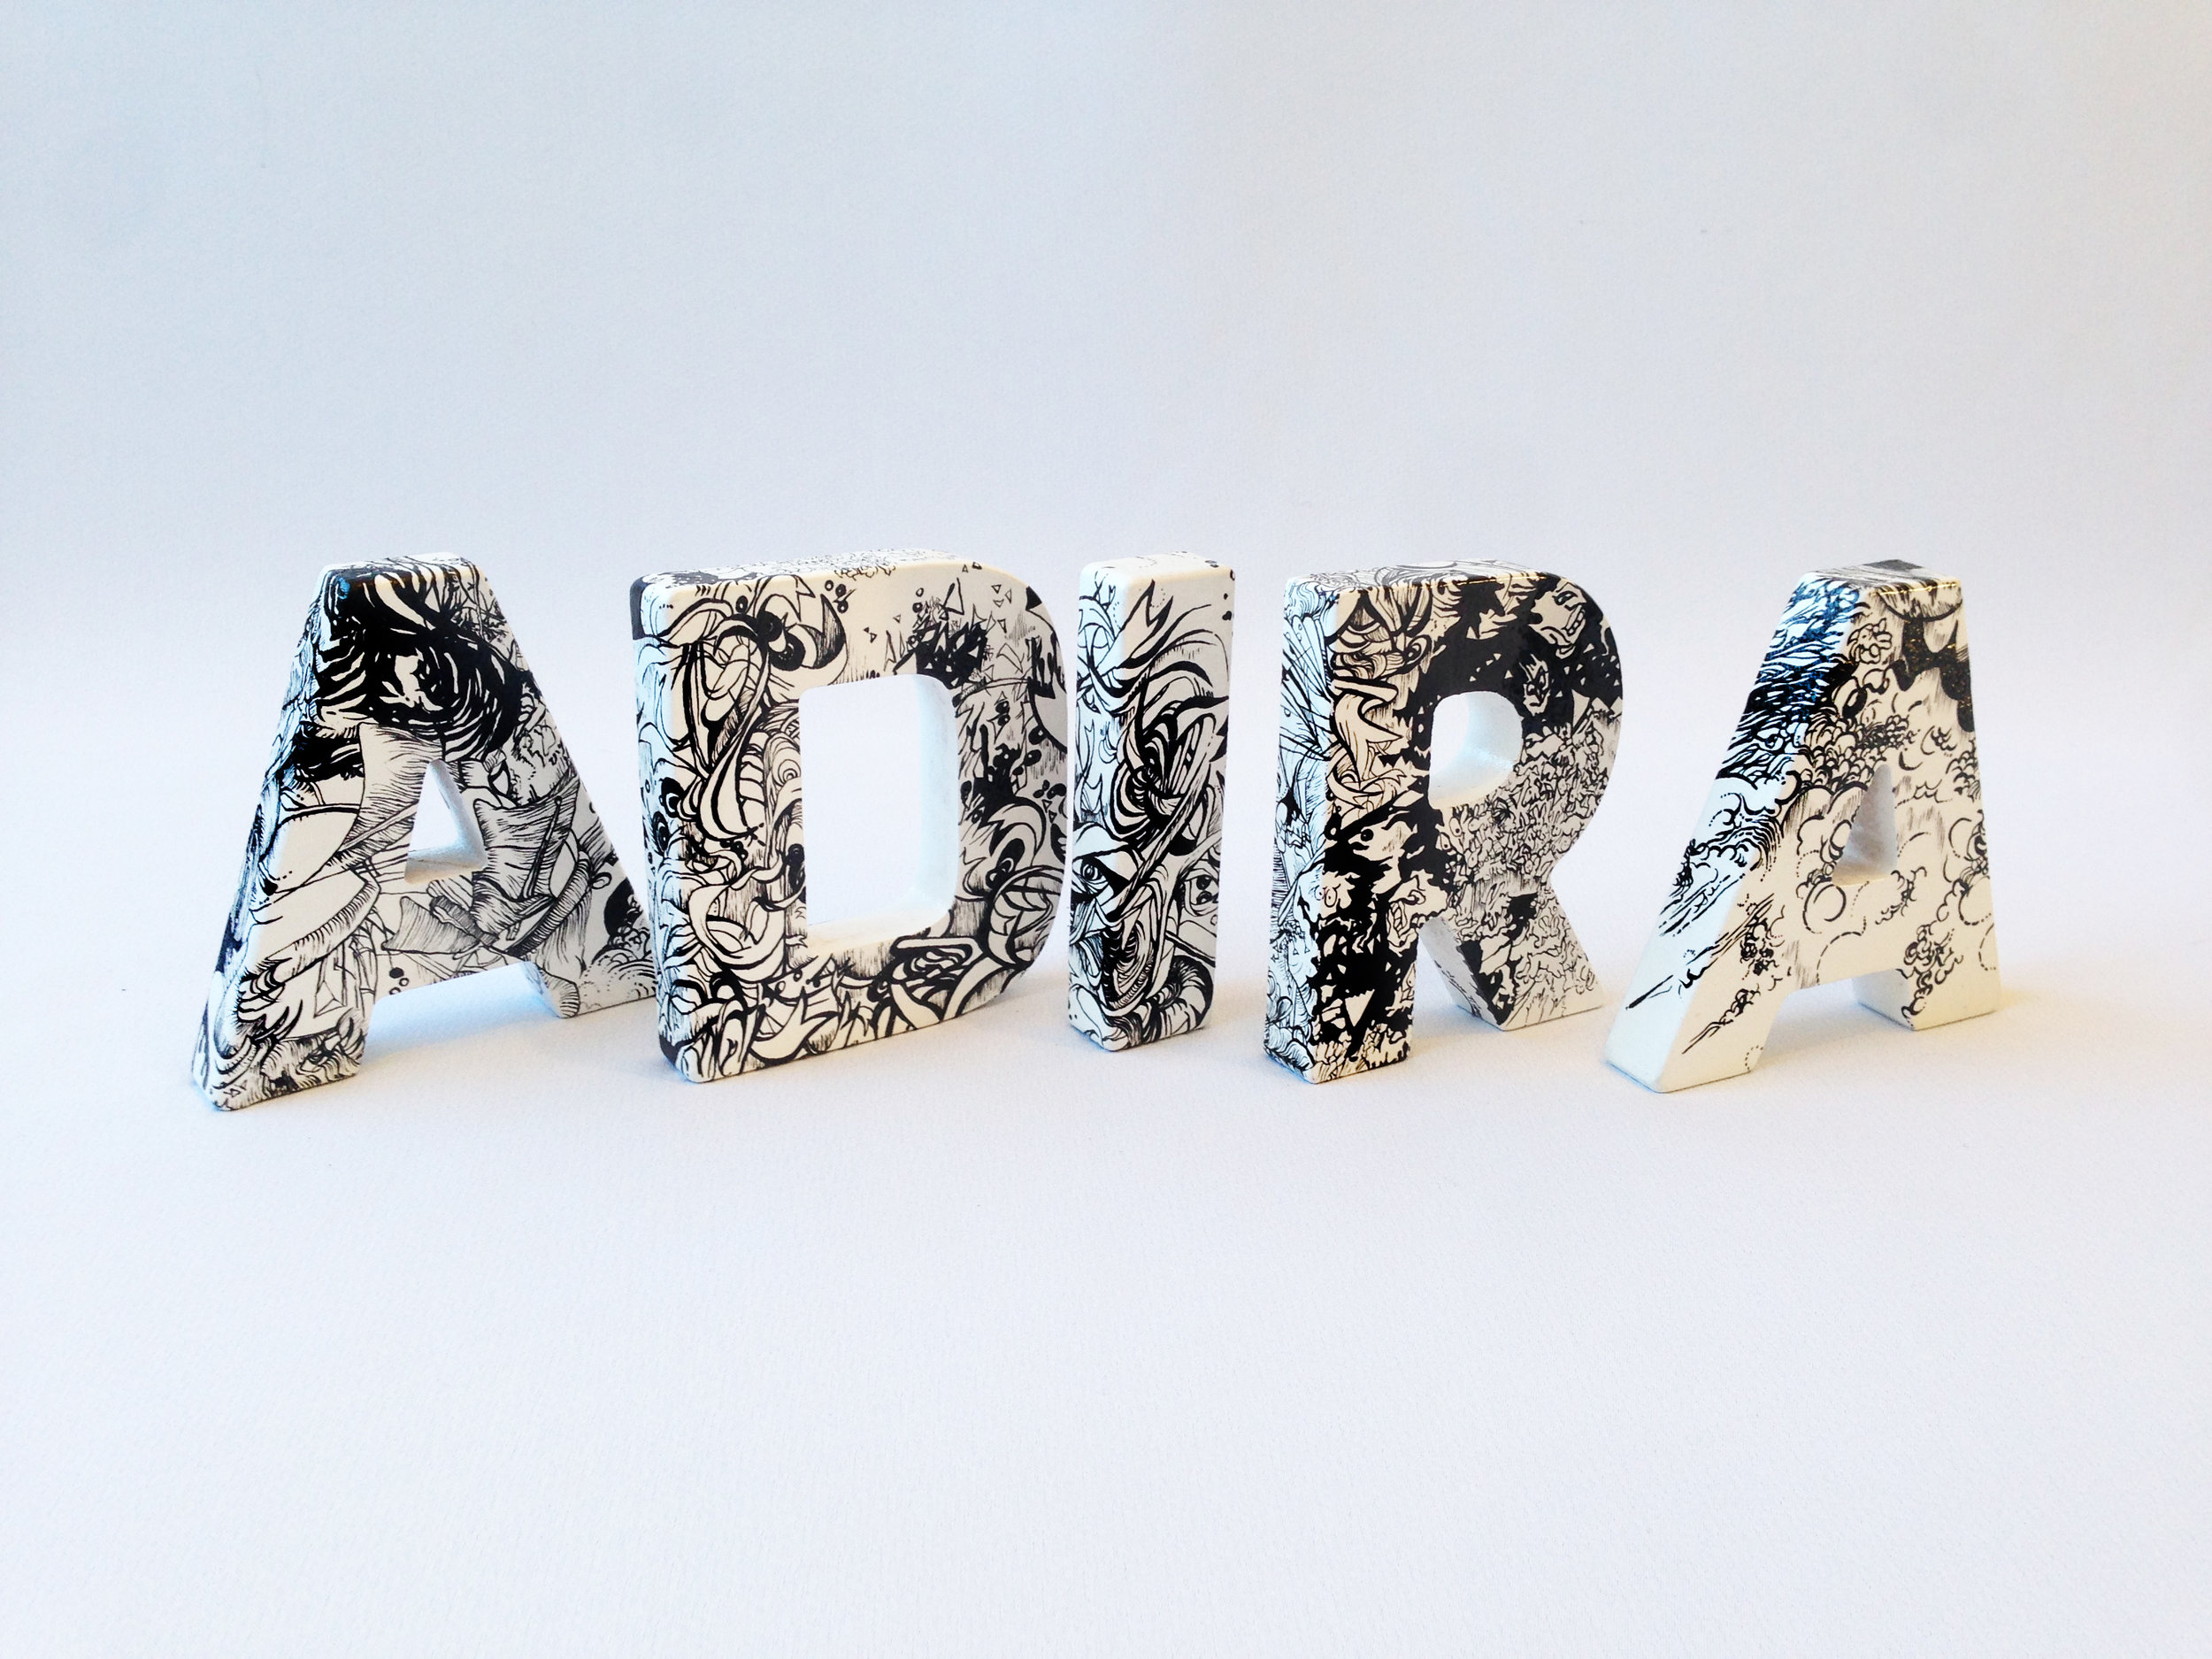 'Mother's Love' , Hand painted letters of Moxham's daughter's name 'Adira', Humbrol enamel, 460 x 110 x 18mm (when lined up), Unique, 2019.  - Spot the difference in the photos :)